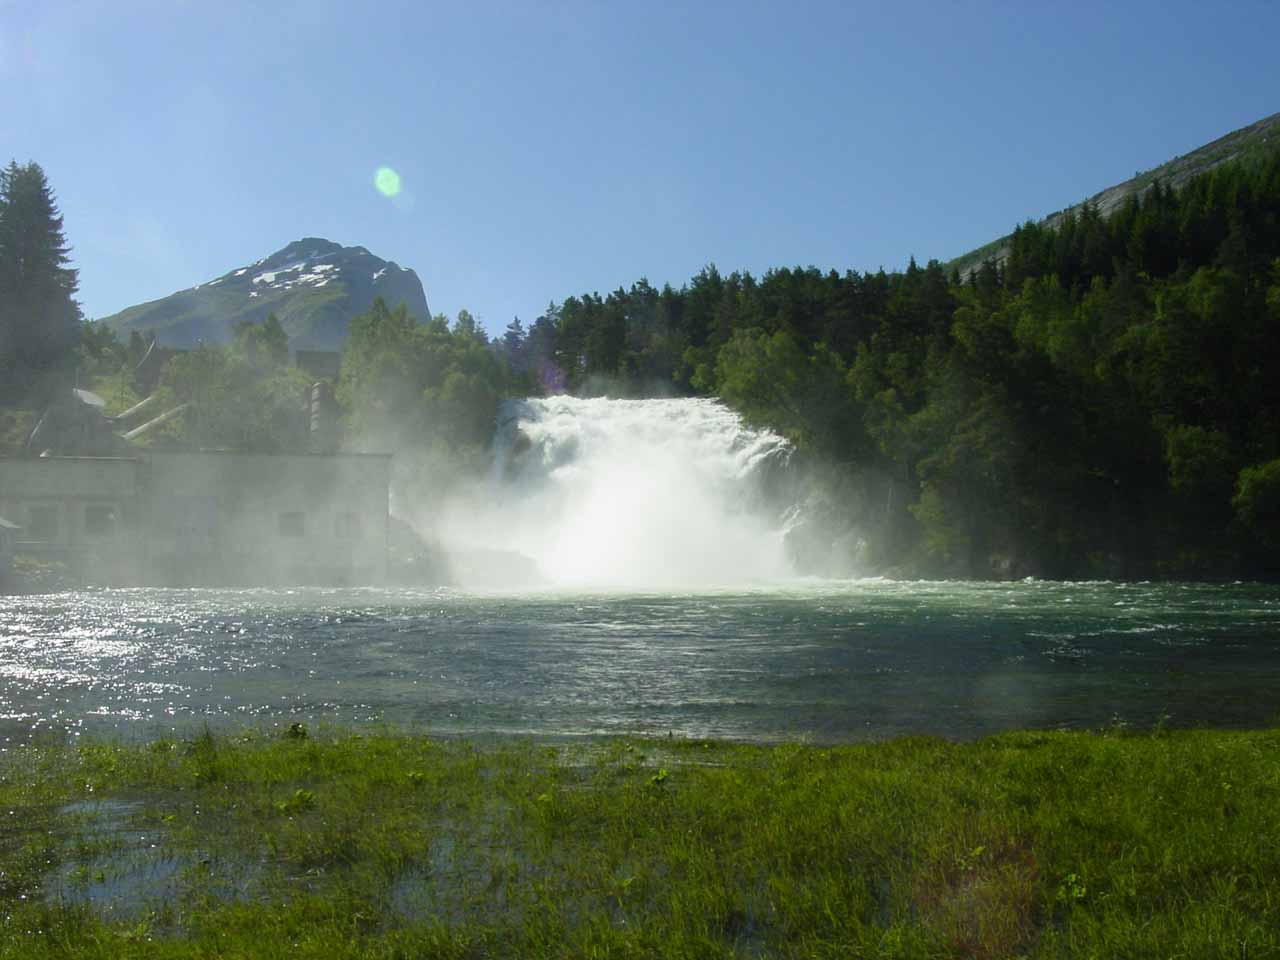 Looking directly at the base of Eidsfossen and the adjacent power station against both the spray and the morning sun